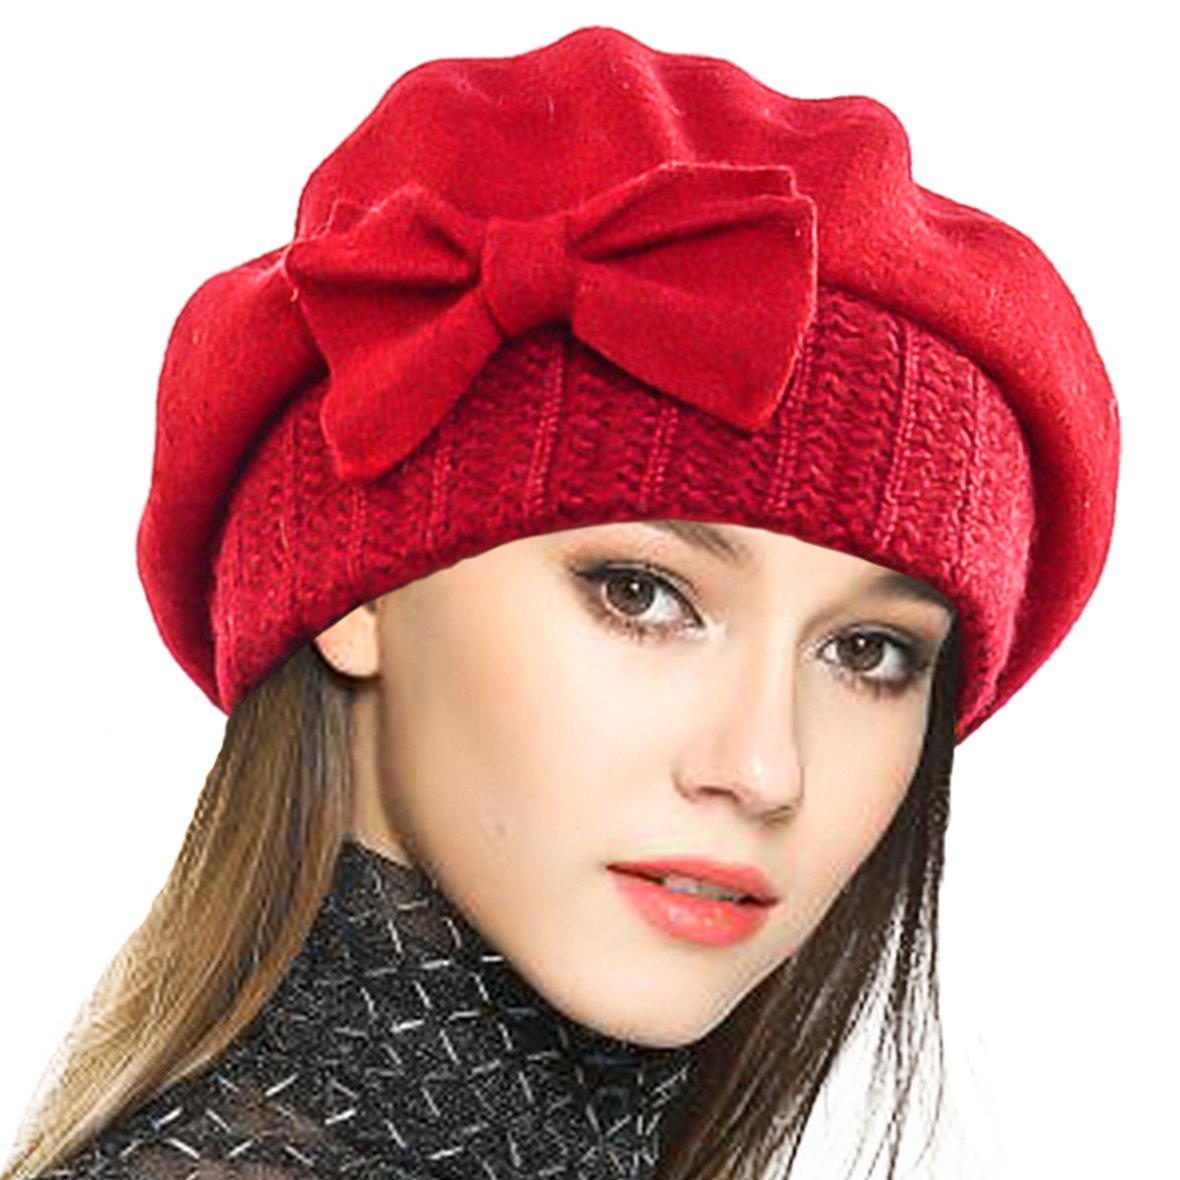 f0695b4634d VECRY Lady French Beret 100% Wool Beret Floral Dress Beanie Winter Hat  product image